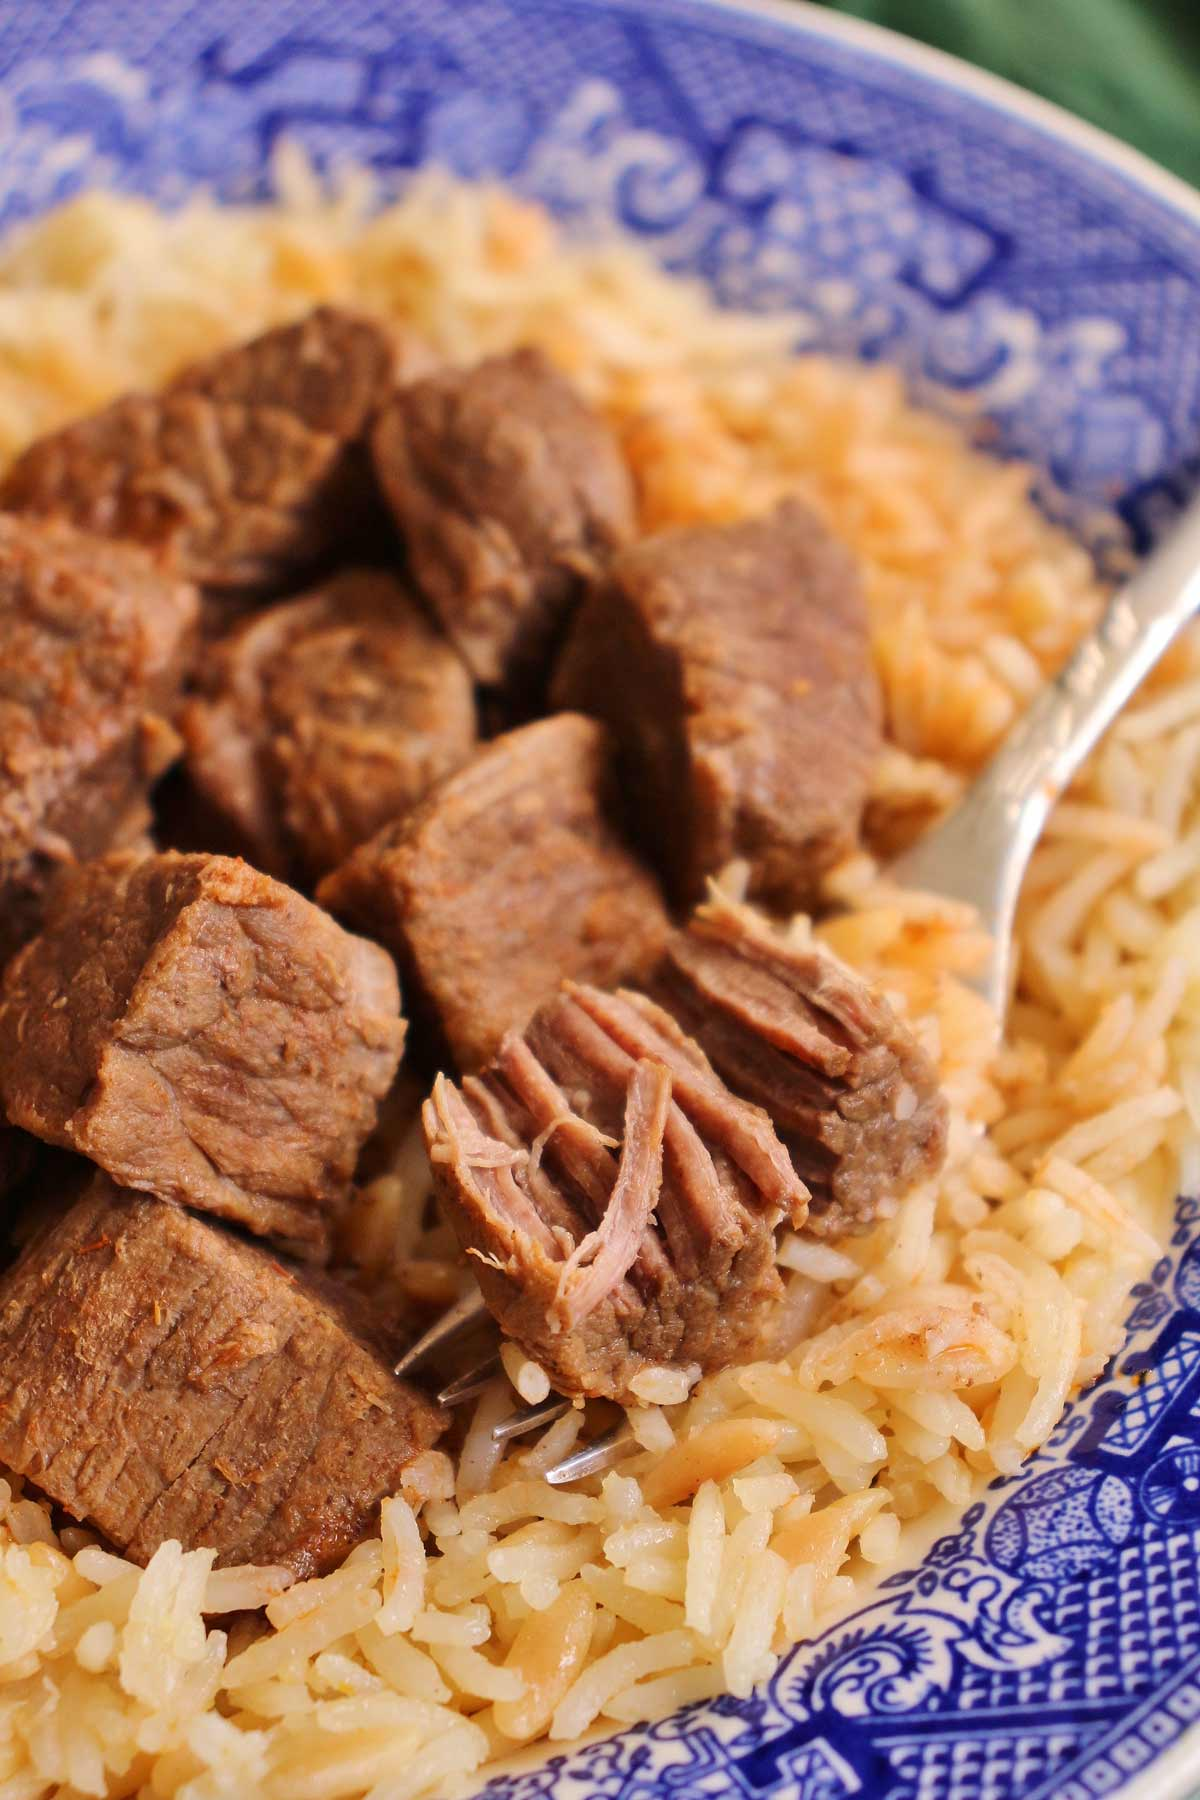 Closeup of a forkful of tas kabab stewed beef sitting in a bowl of rice pilaf.